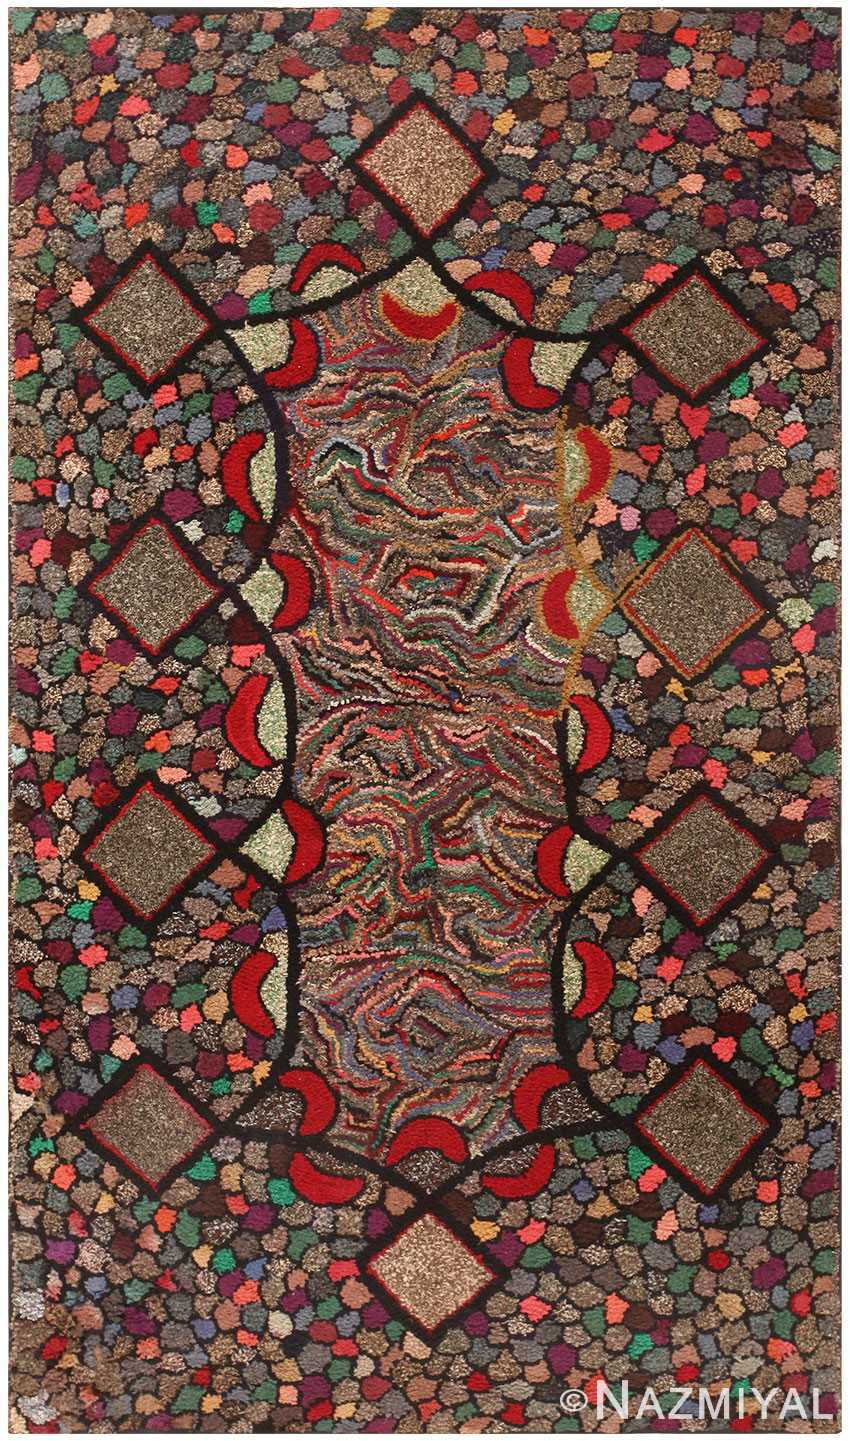 Antique American Deco Hooked Rug 50309 by Nazmiyal